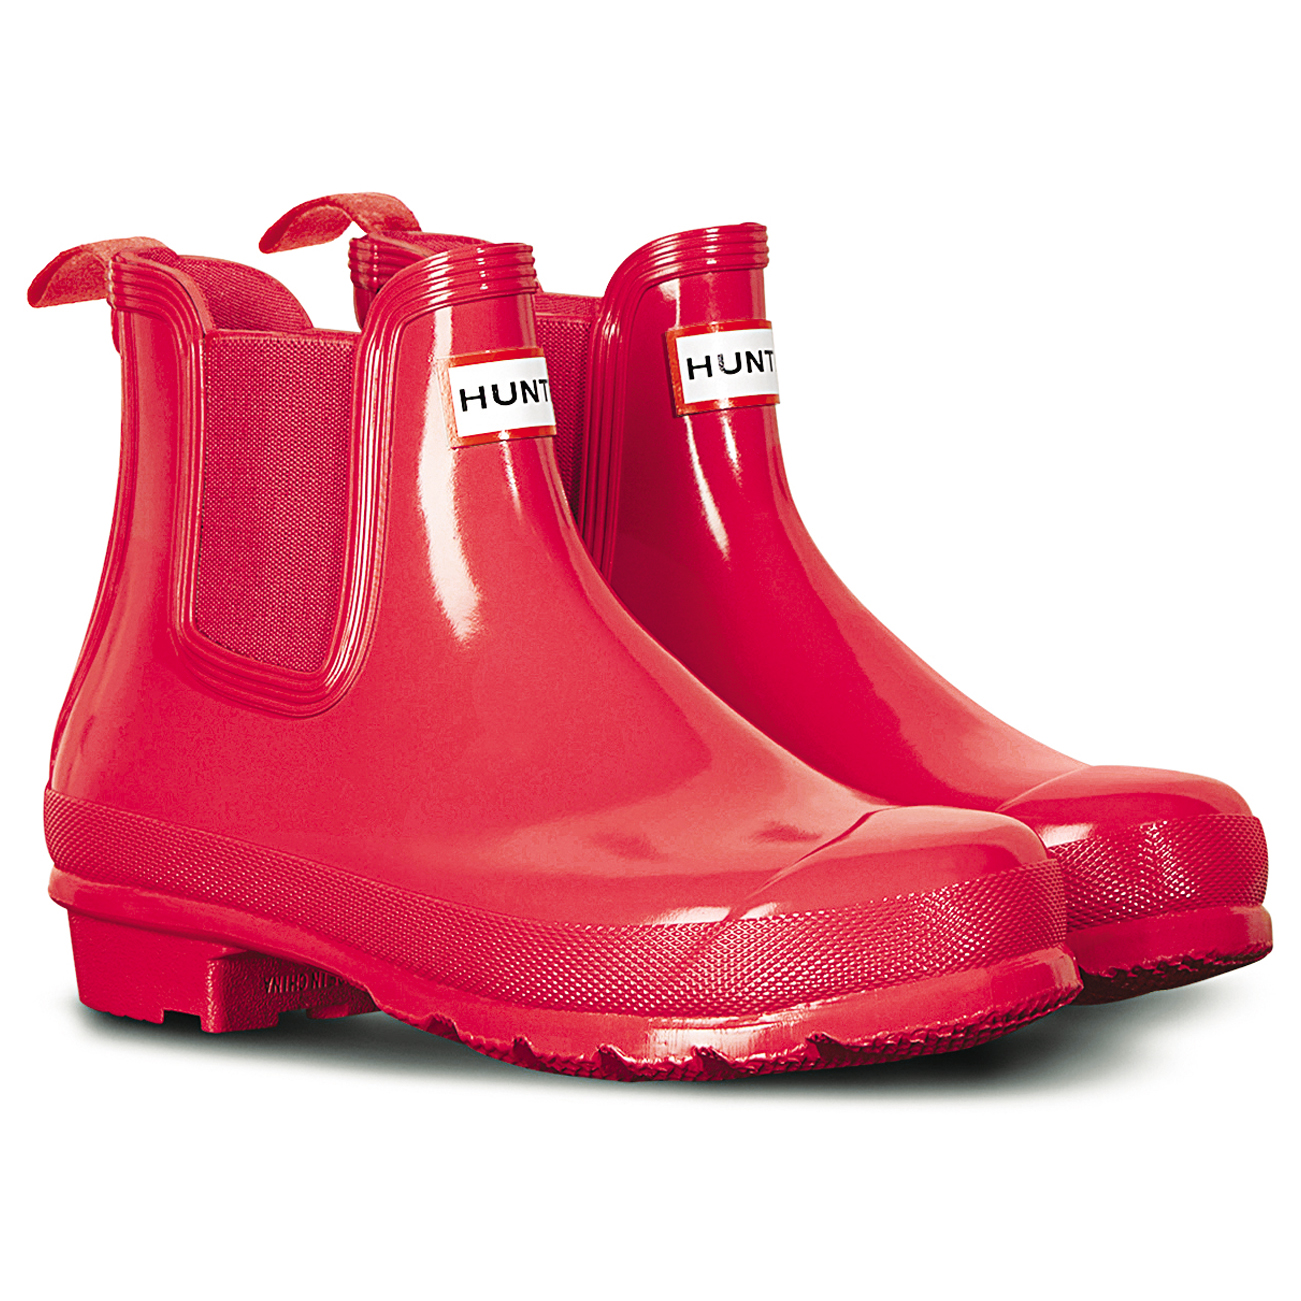 Women's rain boots showcase your style no matter the forecast! From the office to the store to the neighborhood playground, these fashionable waterproof shoes protect your feet while accenting your wardrobe with a splash of fun style.